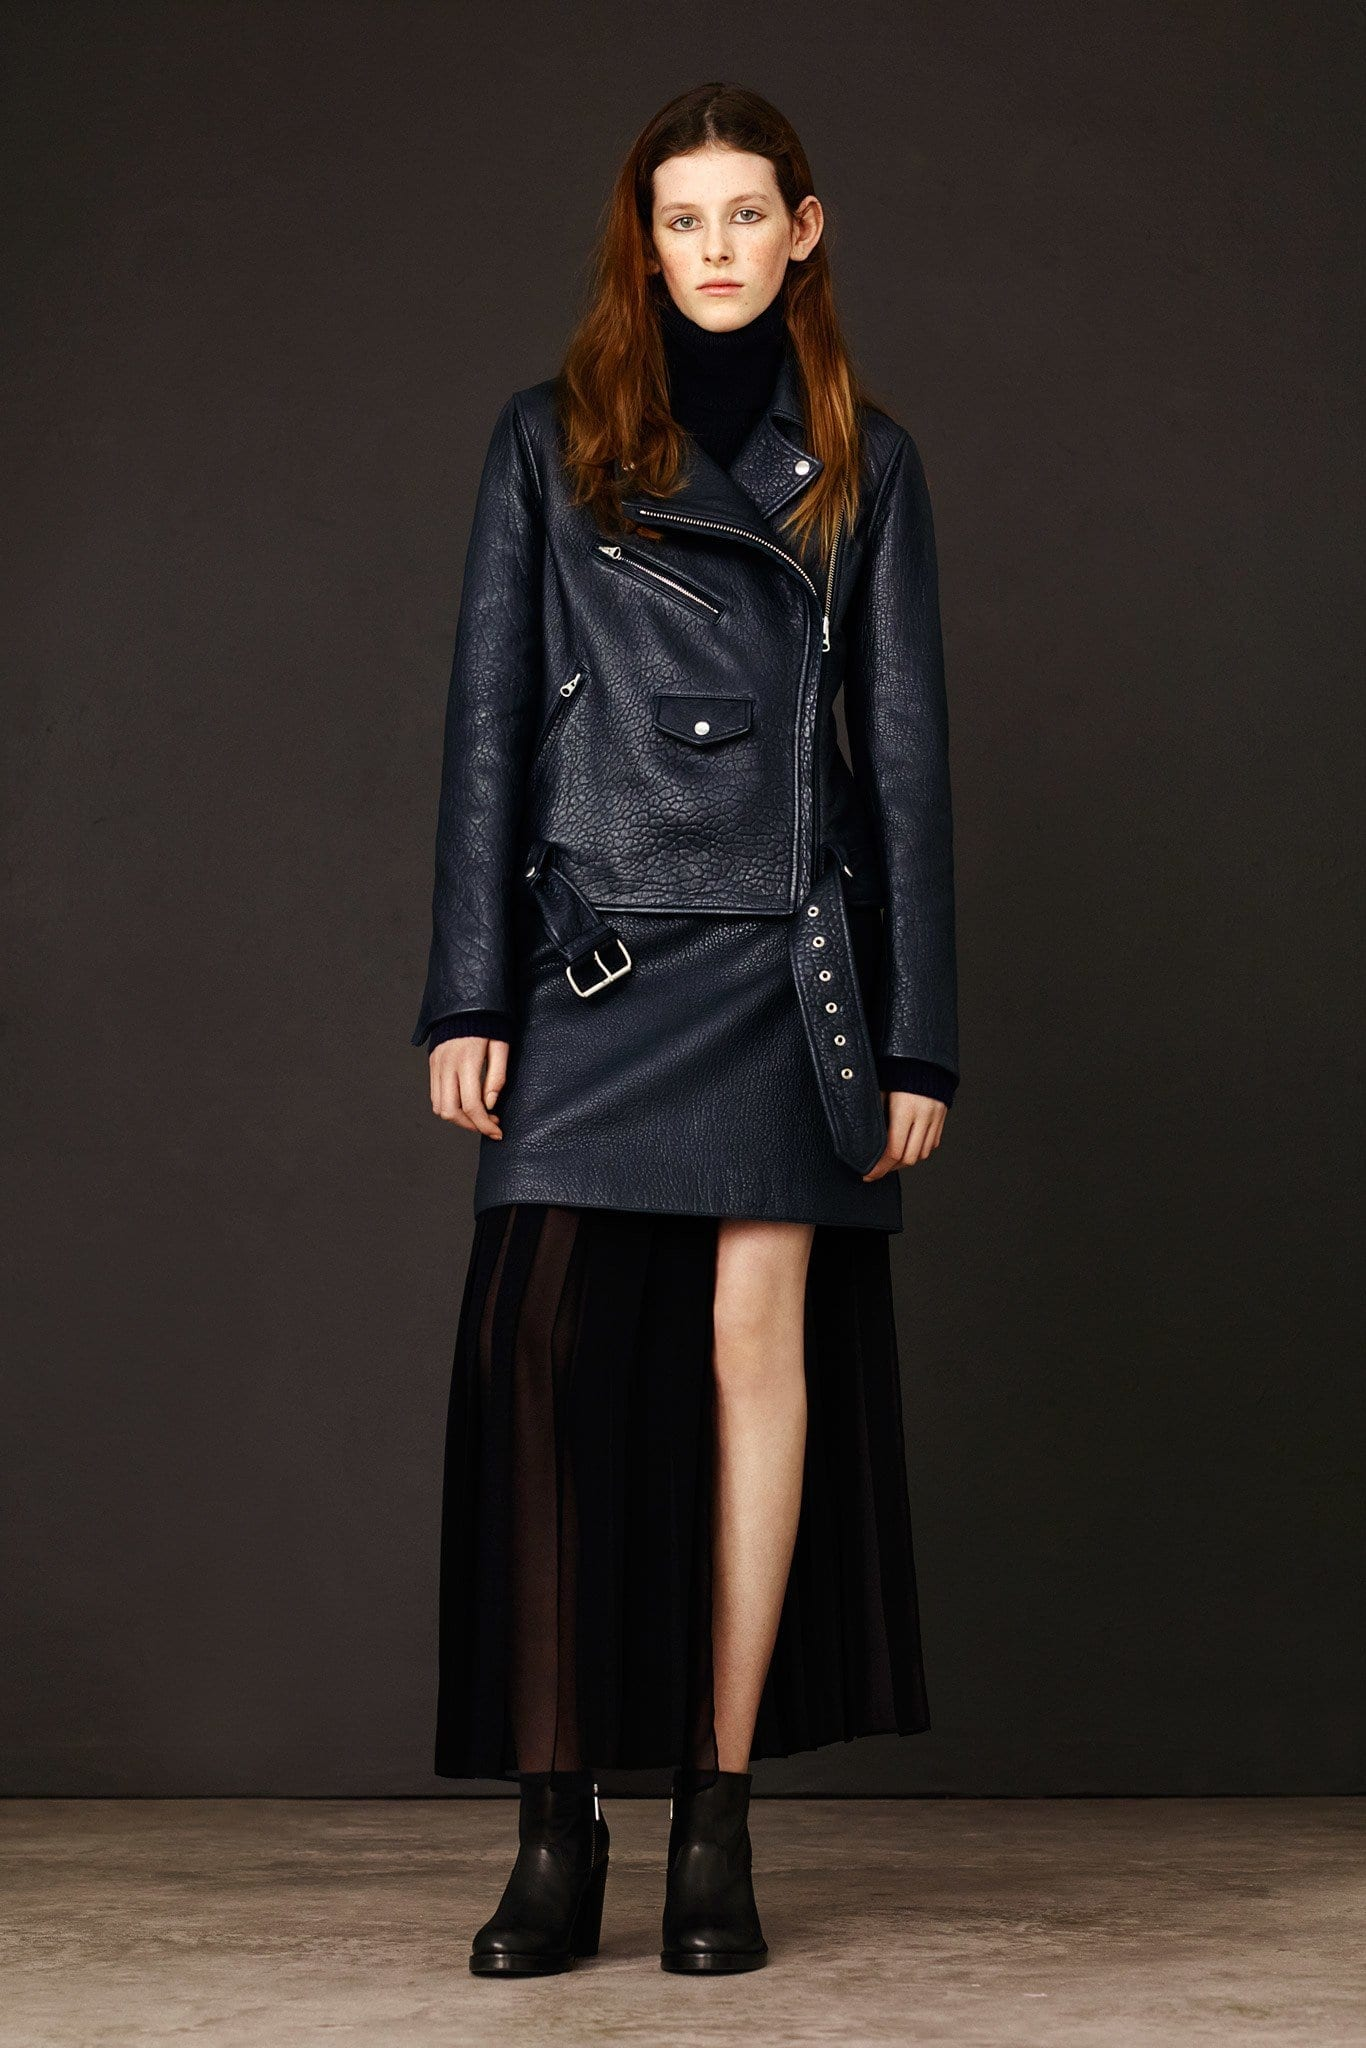 Alexander-McQueen-Tailored-Biker-Jacket Top Women Leather Jacket Brands-15 Most Expensive Brands 2017